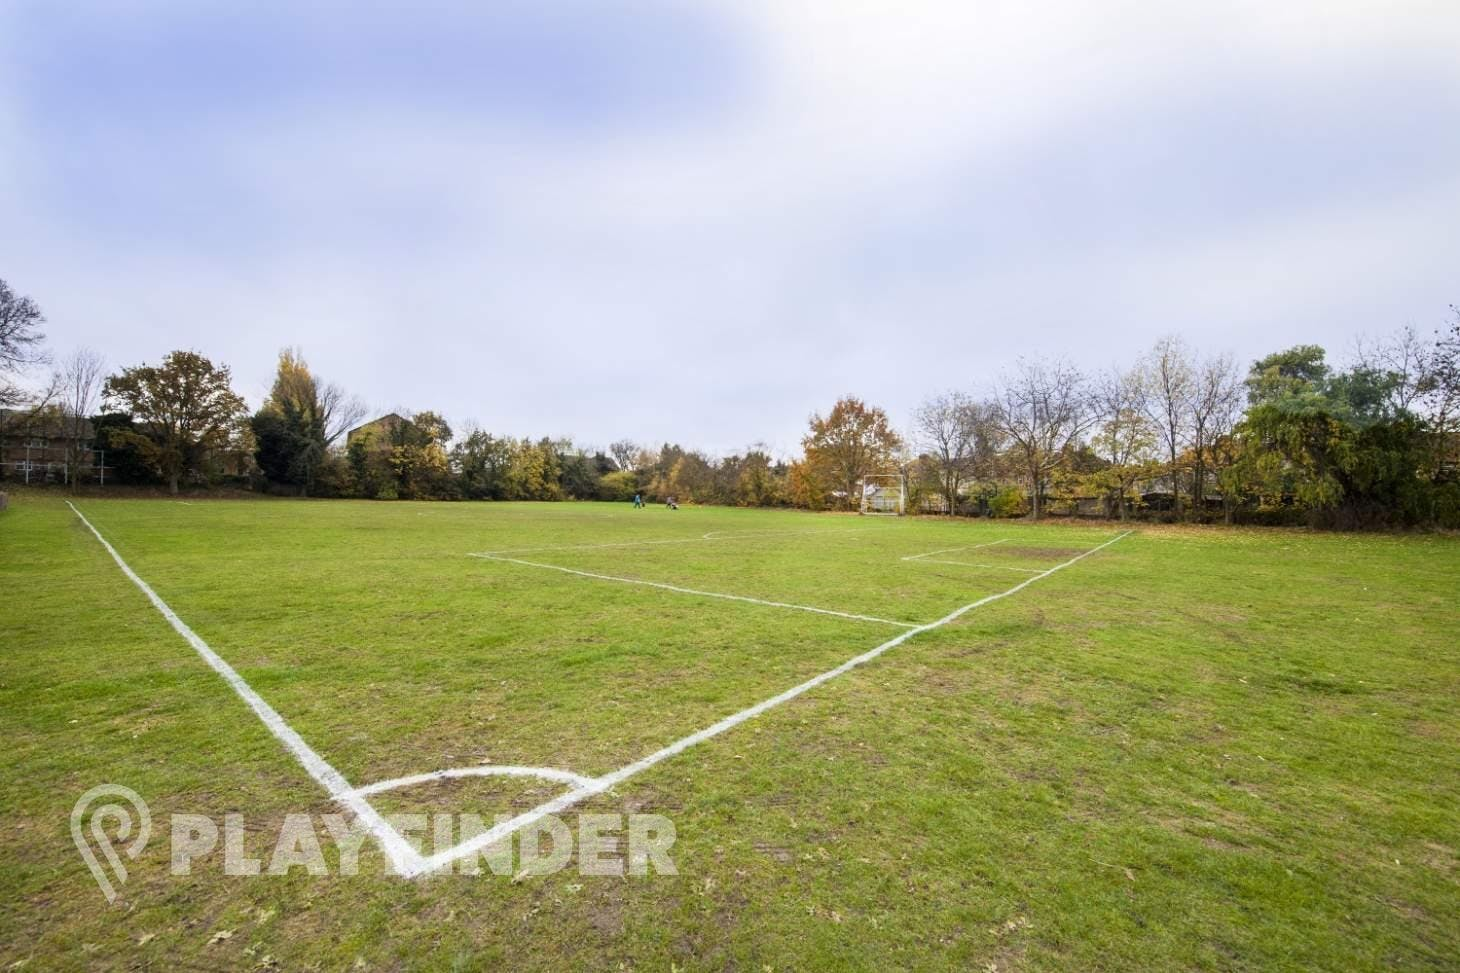 Rolls Sports Ground 9 a side | Grass football pitch